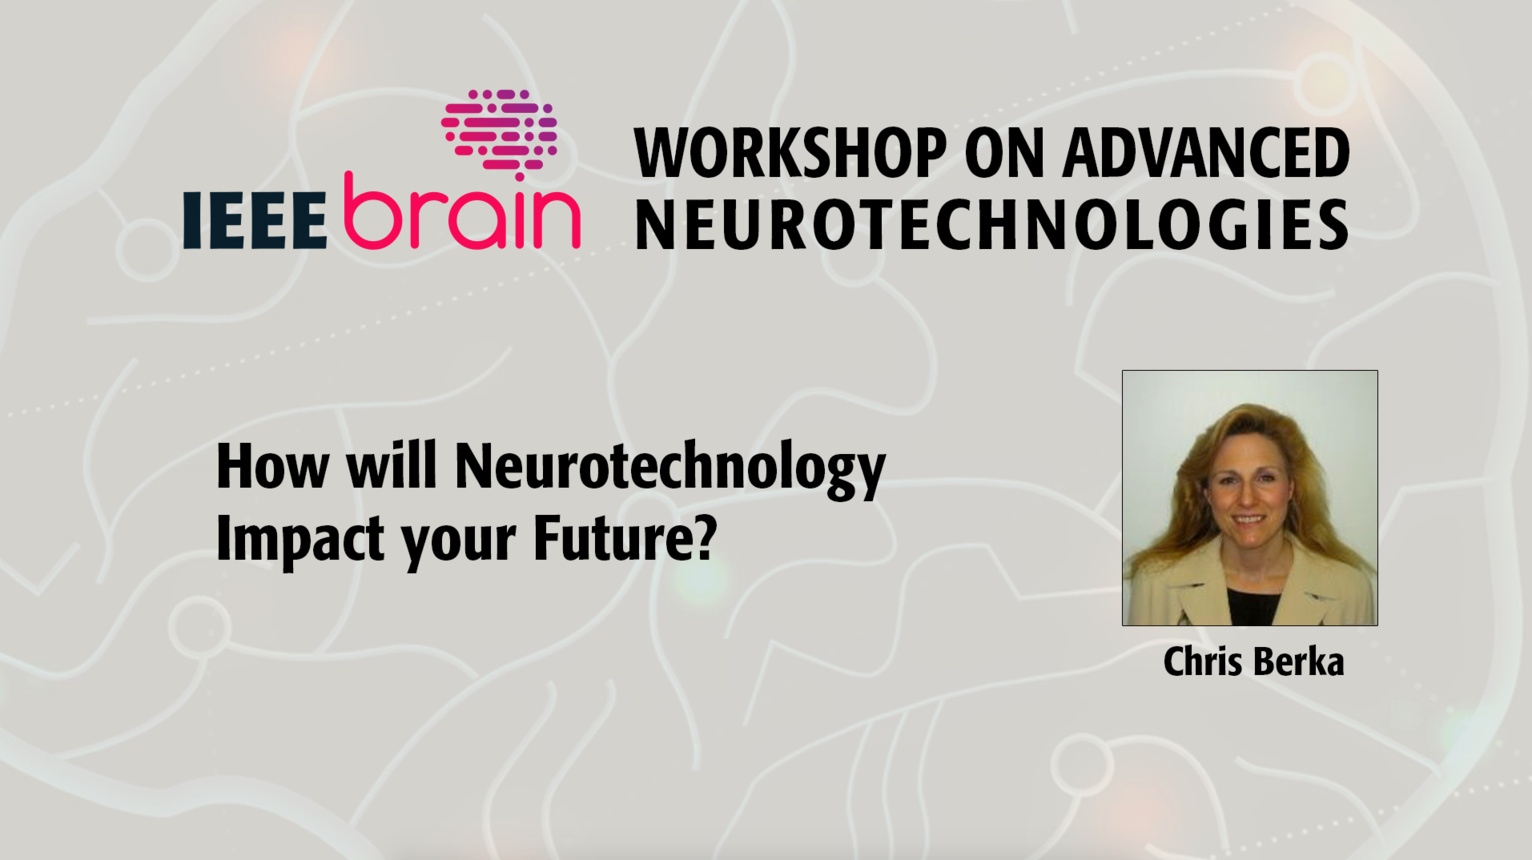 How will Neurotechnology Impact your Future? - IEEE Brain Workshop